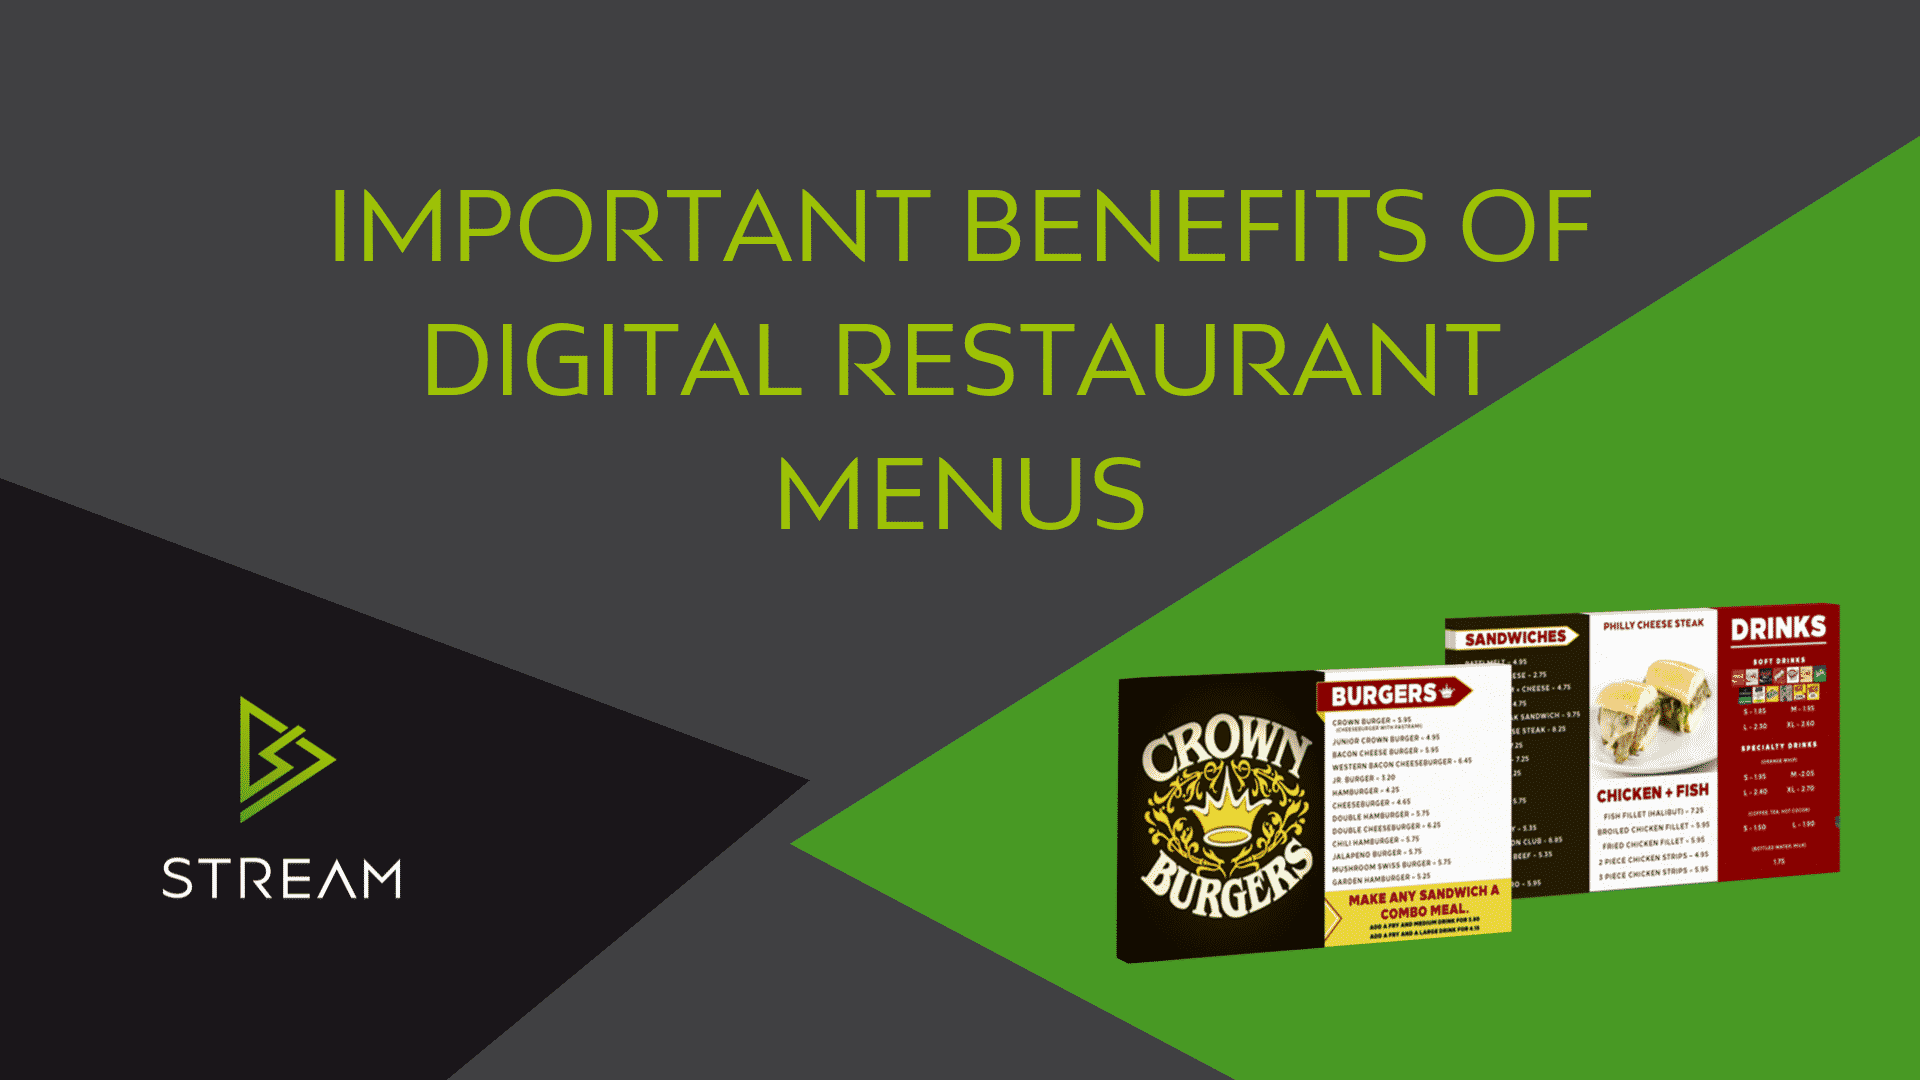 Restaurant Menu – Important Benefits going Digital